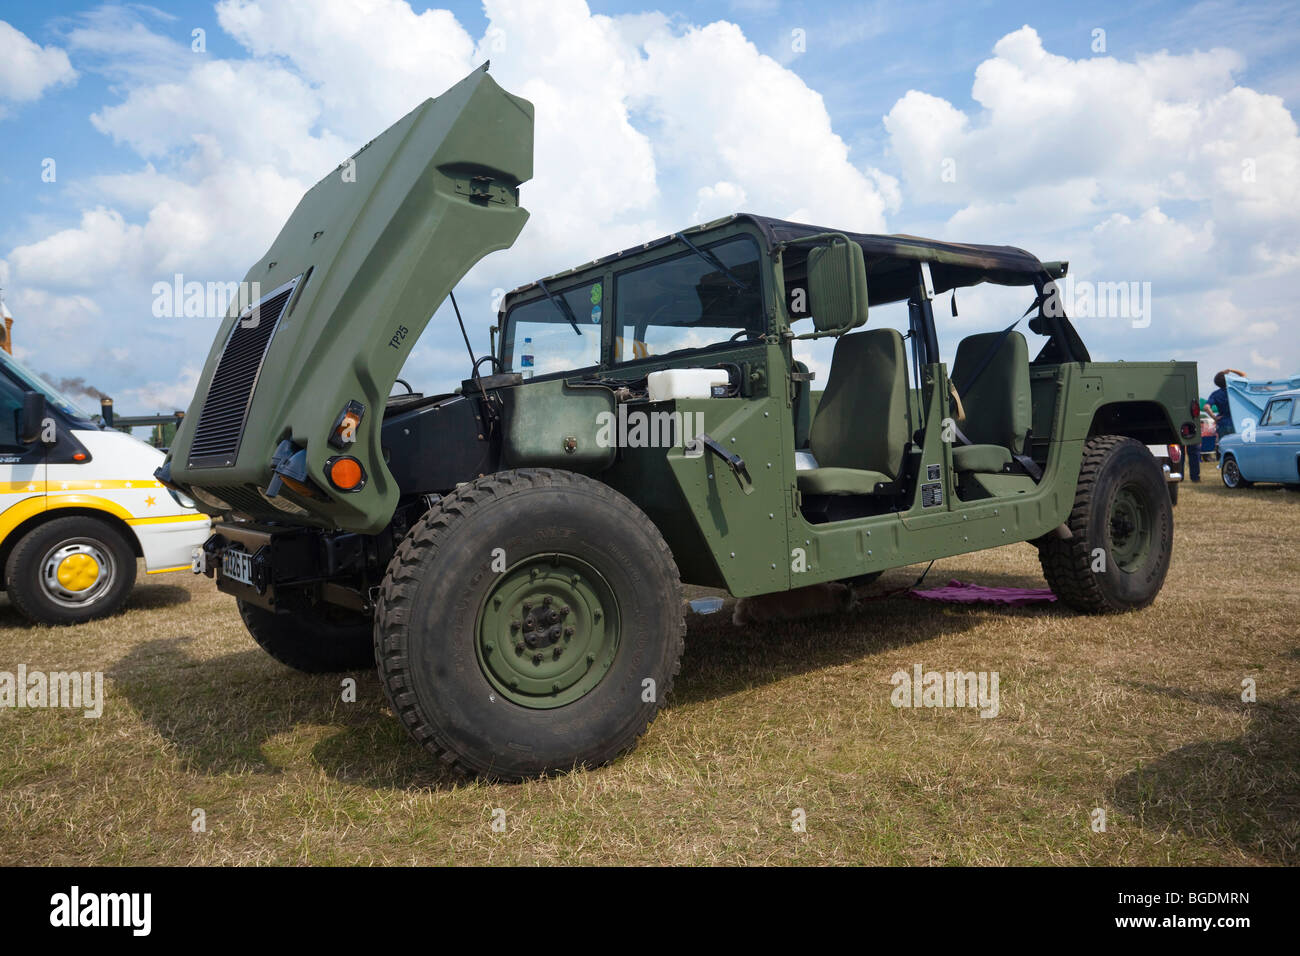 military Humvee vehicle on display at car show in UK - Stock Image